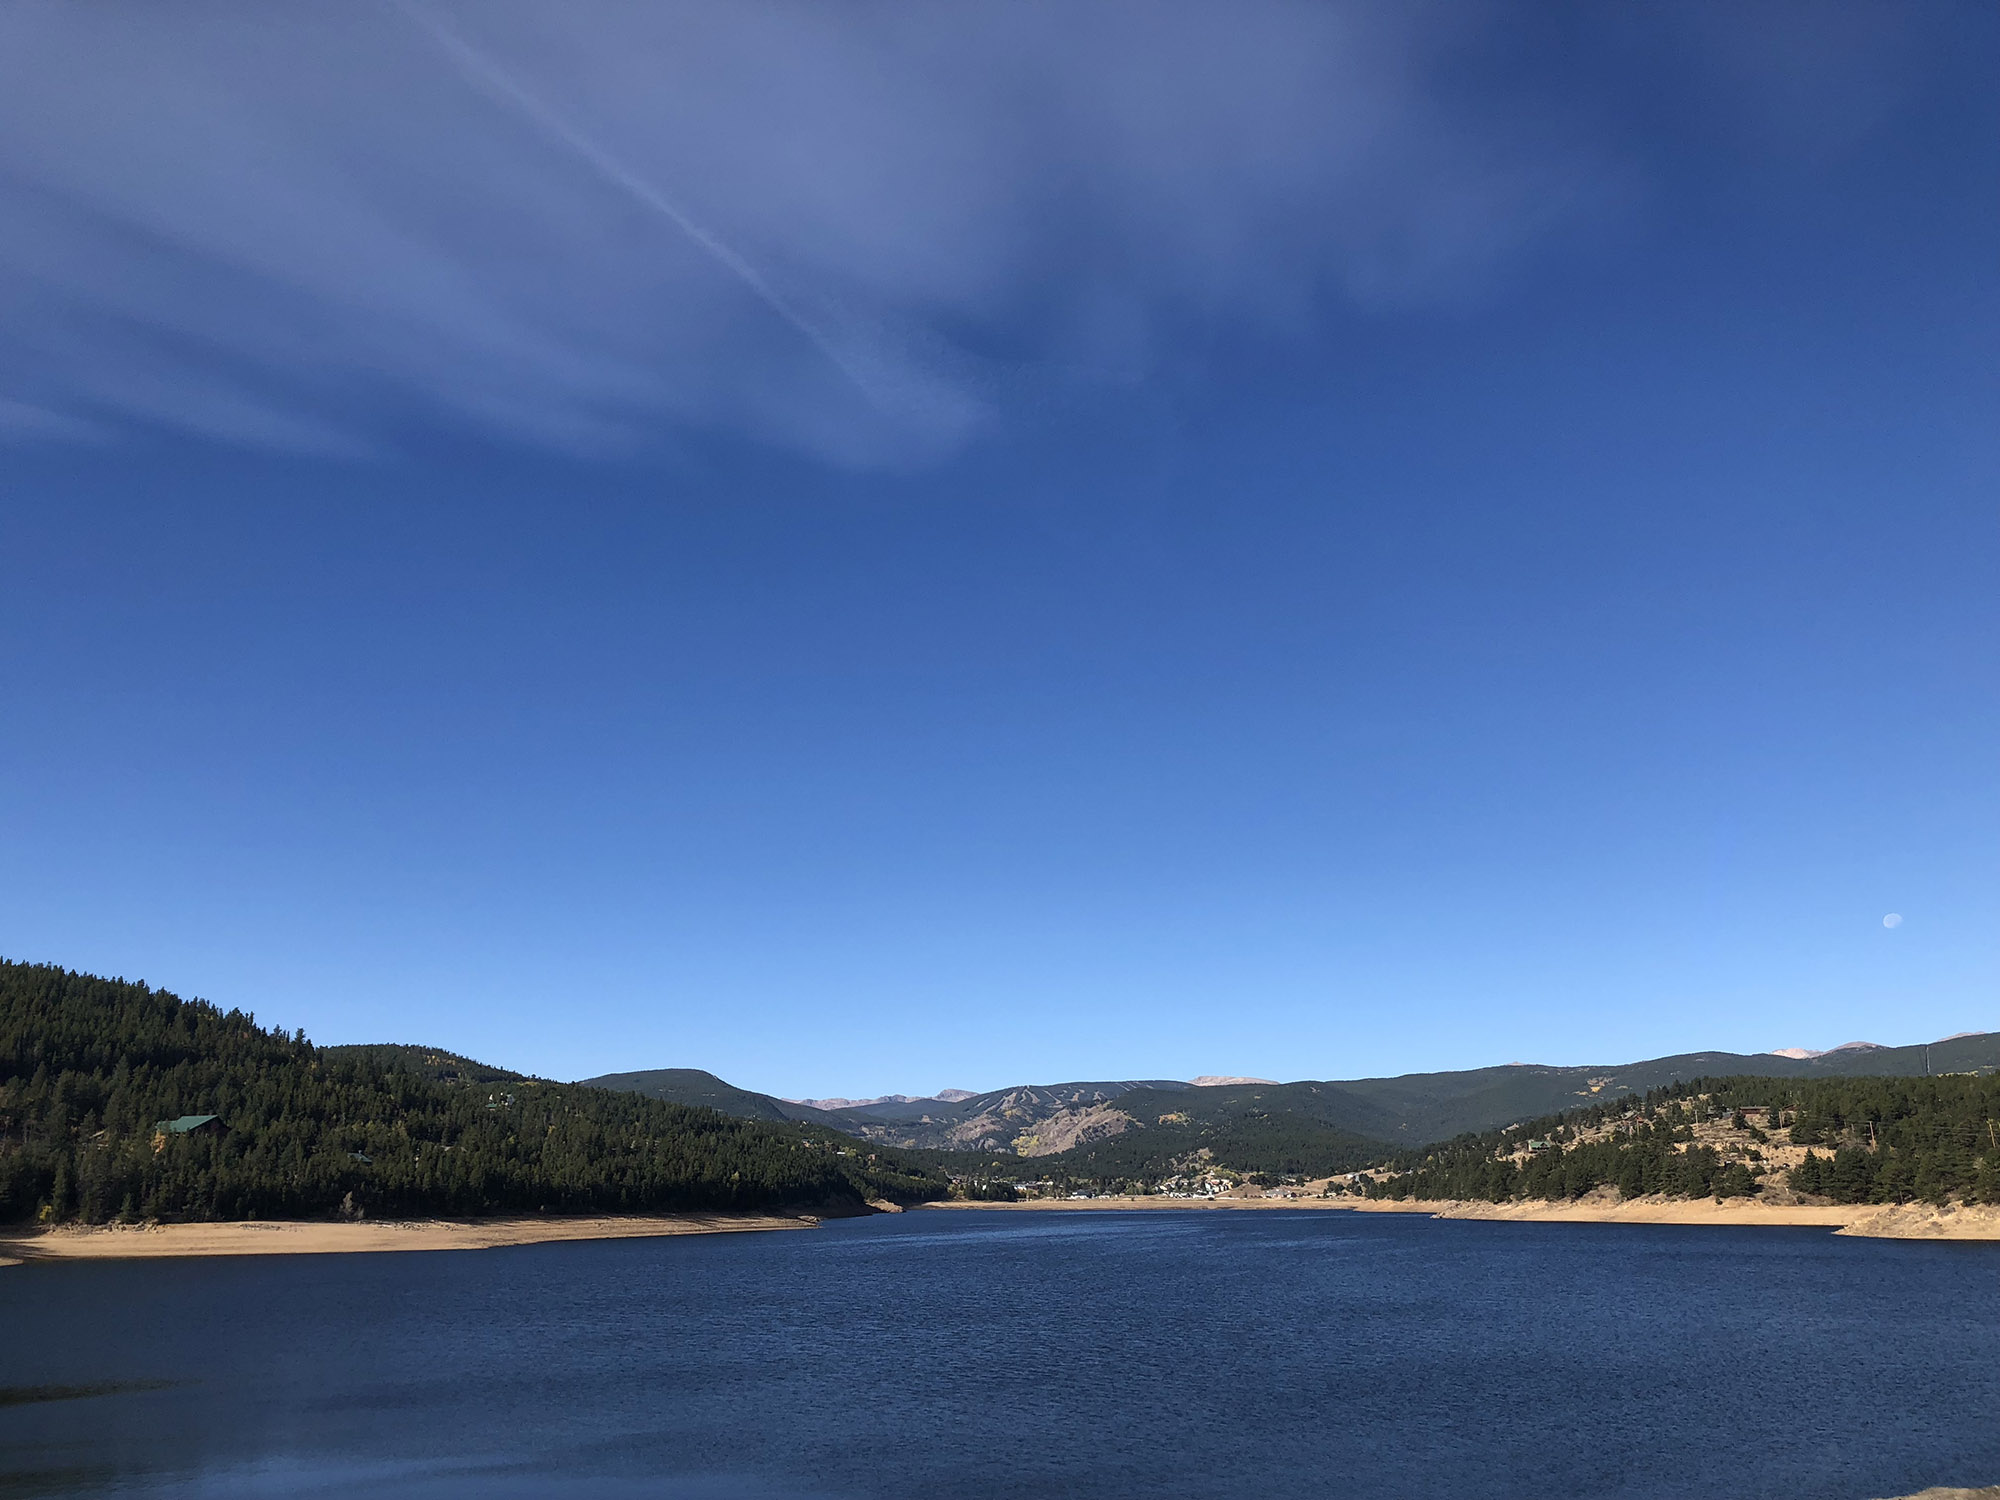 Nederland, Colorado from across the reservoir